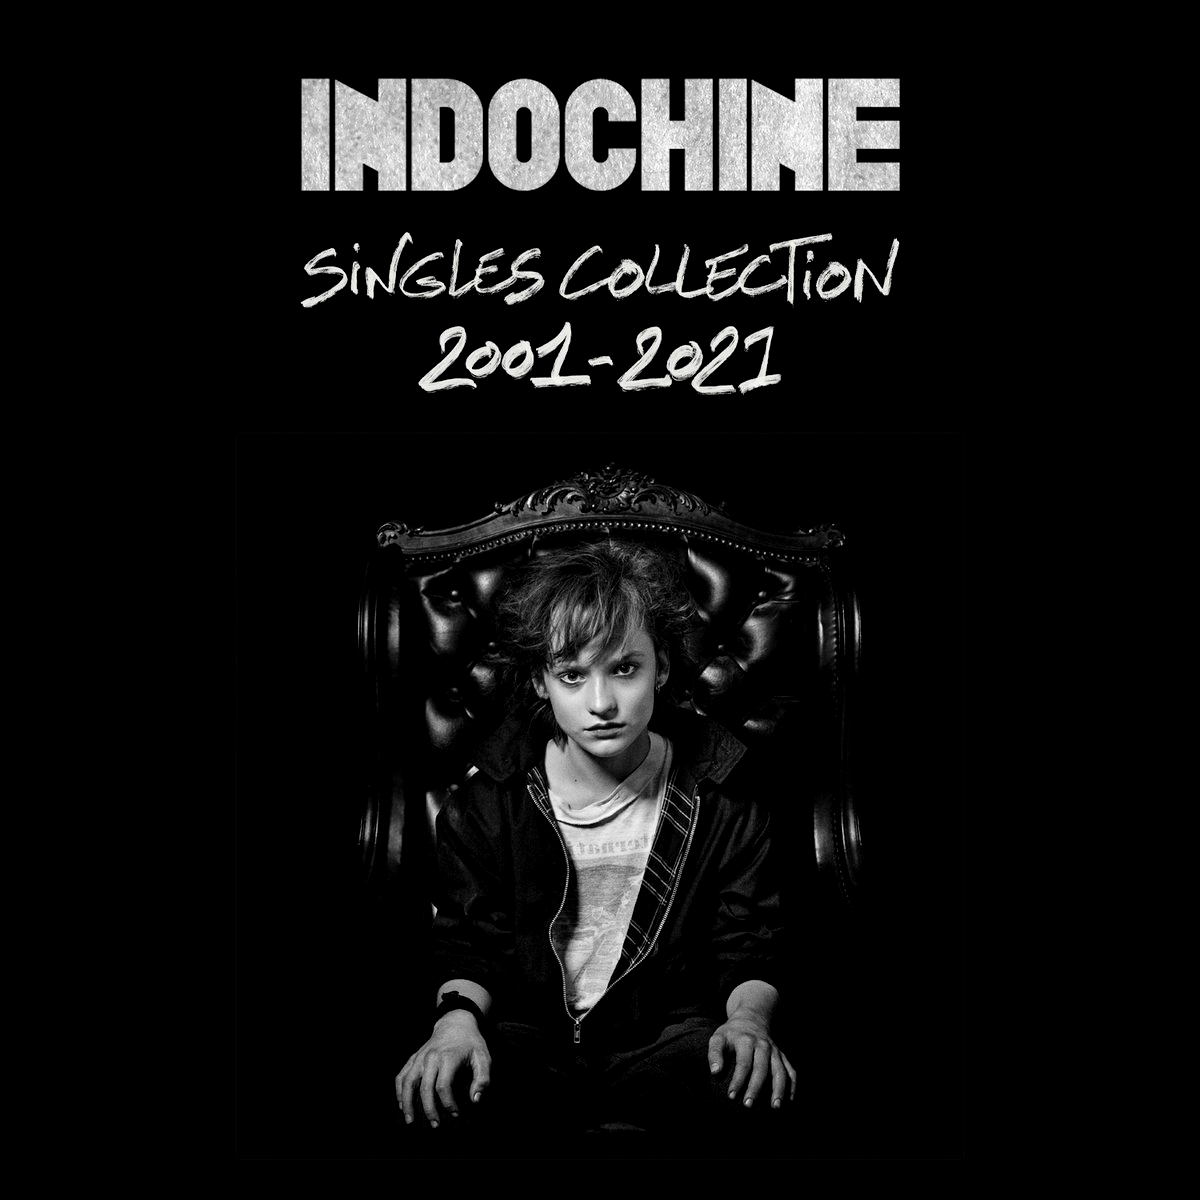 INDOCHINE: Singles collection 2001-2021